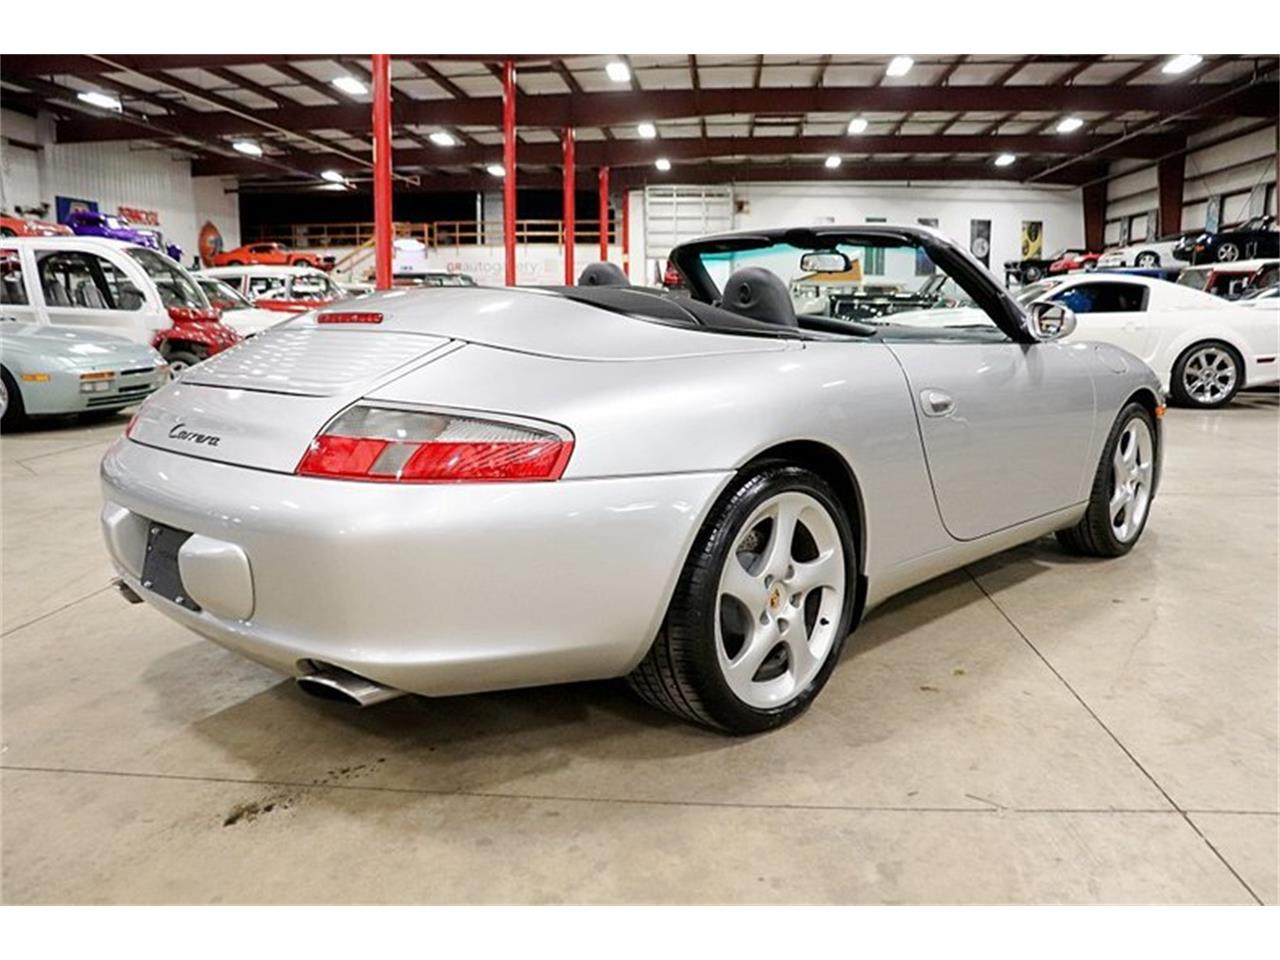 Large Picture of '04 Porsche 911 located in Kentwood Michigan - $36,900.00 Offered by GR Auto Gallery - Q409